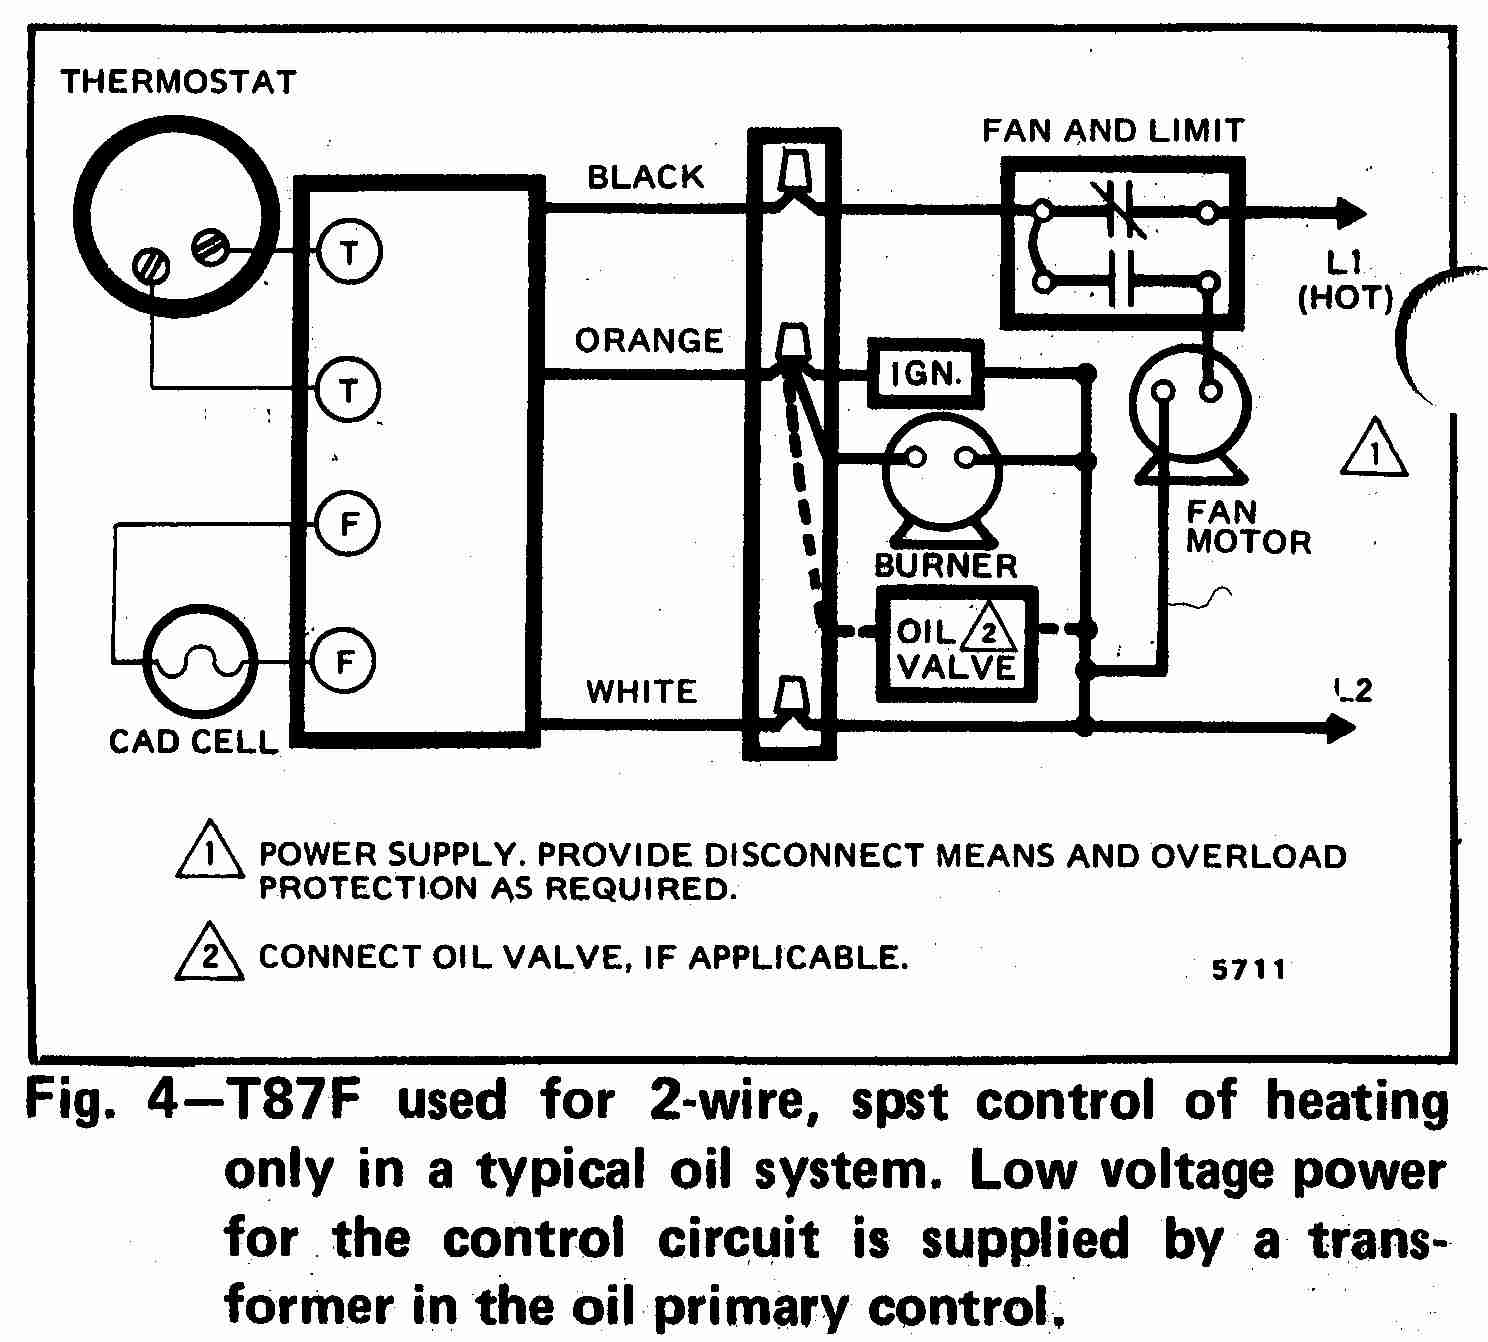 TT_T87F_0002_2W_DJF room thermostat wiring diagrams for hvac systems cold room control panel wiring diagram at gsmx.co